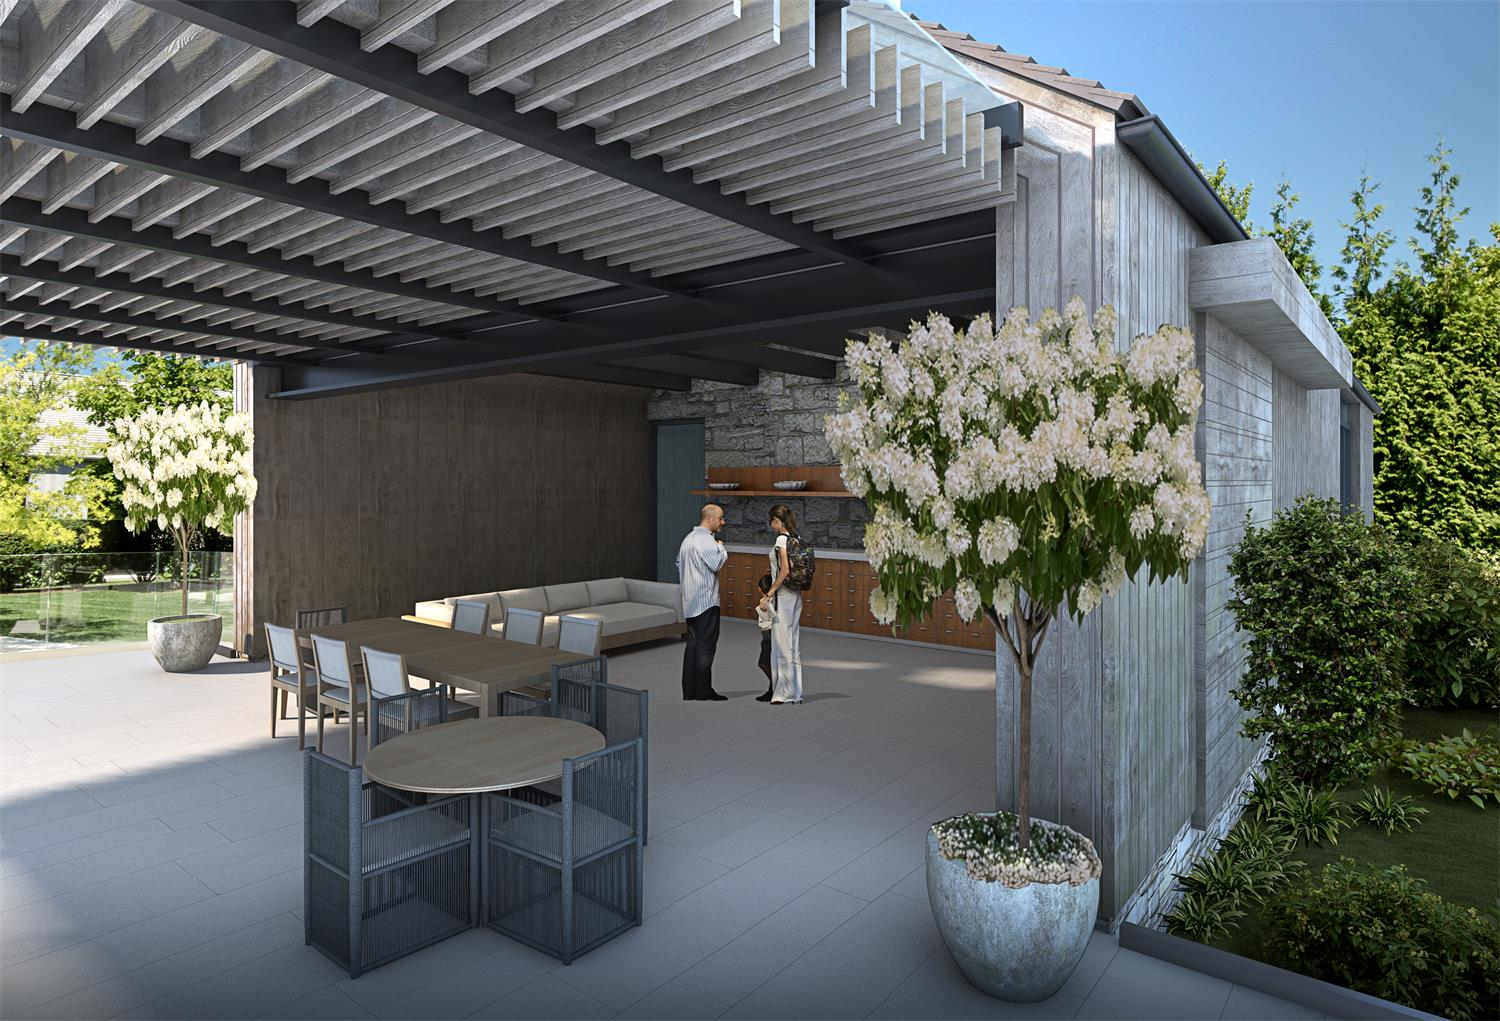 Highland Terrace Padia Residence Innovation Visualized by 3D Rendering